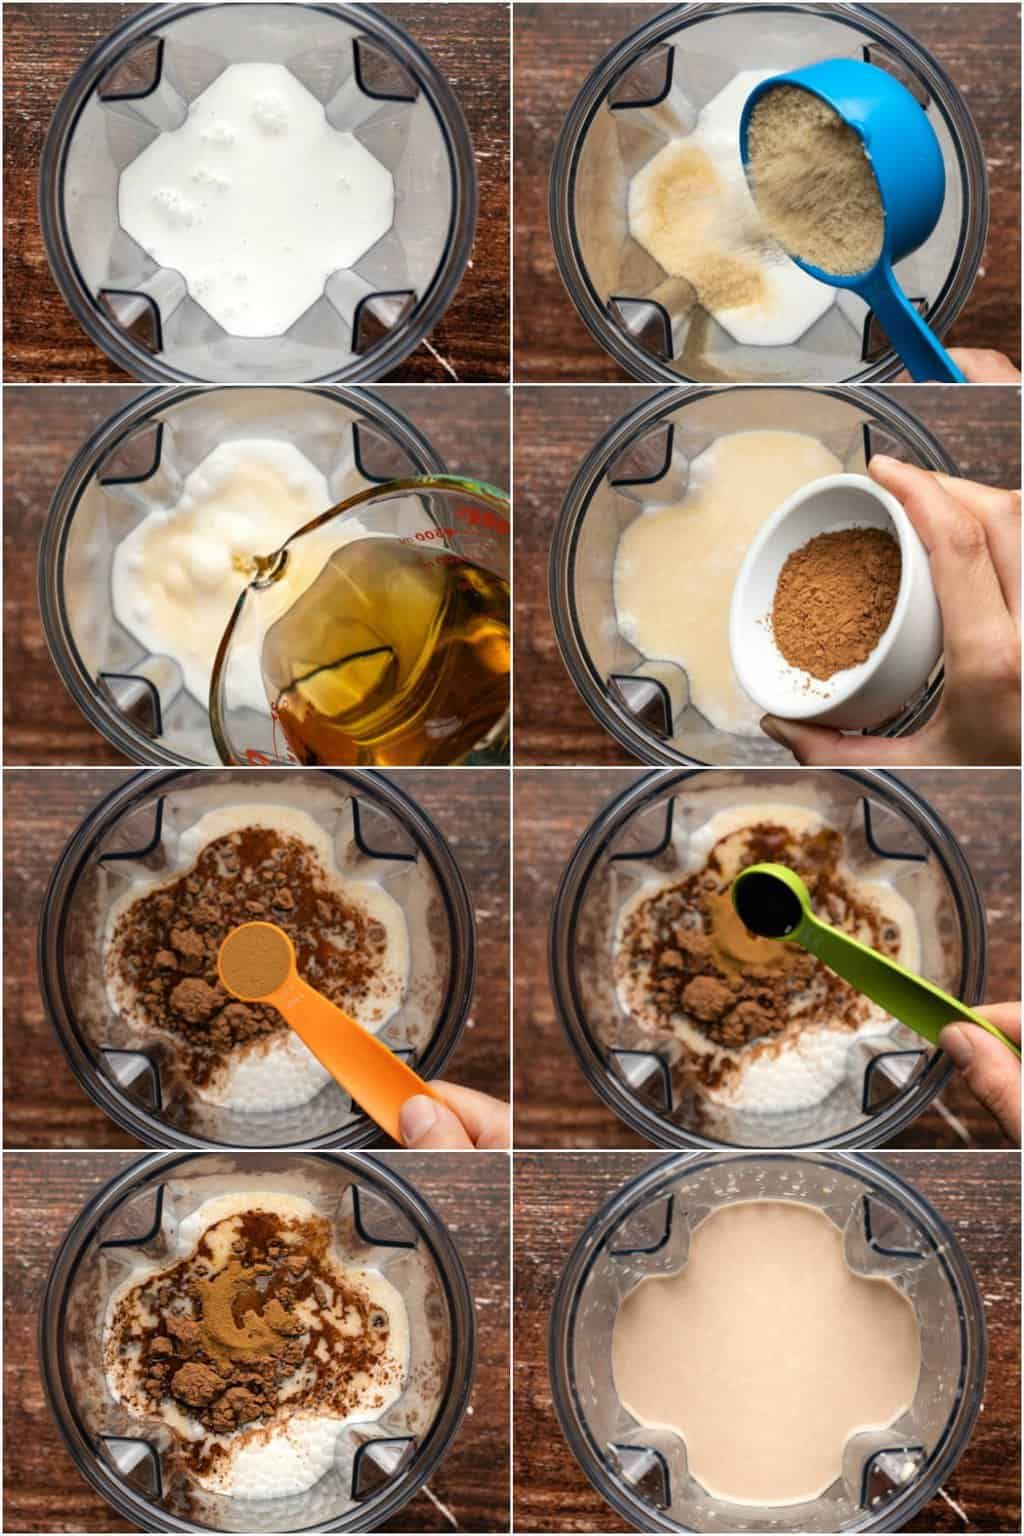 Step by step process photo collage of making vegan baileys.